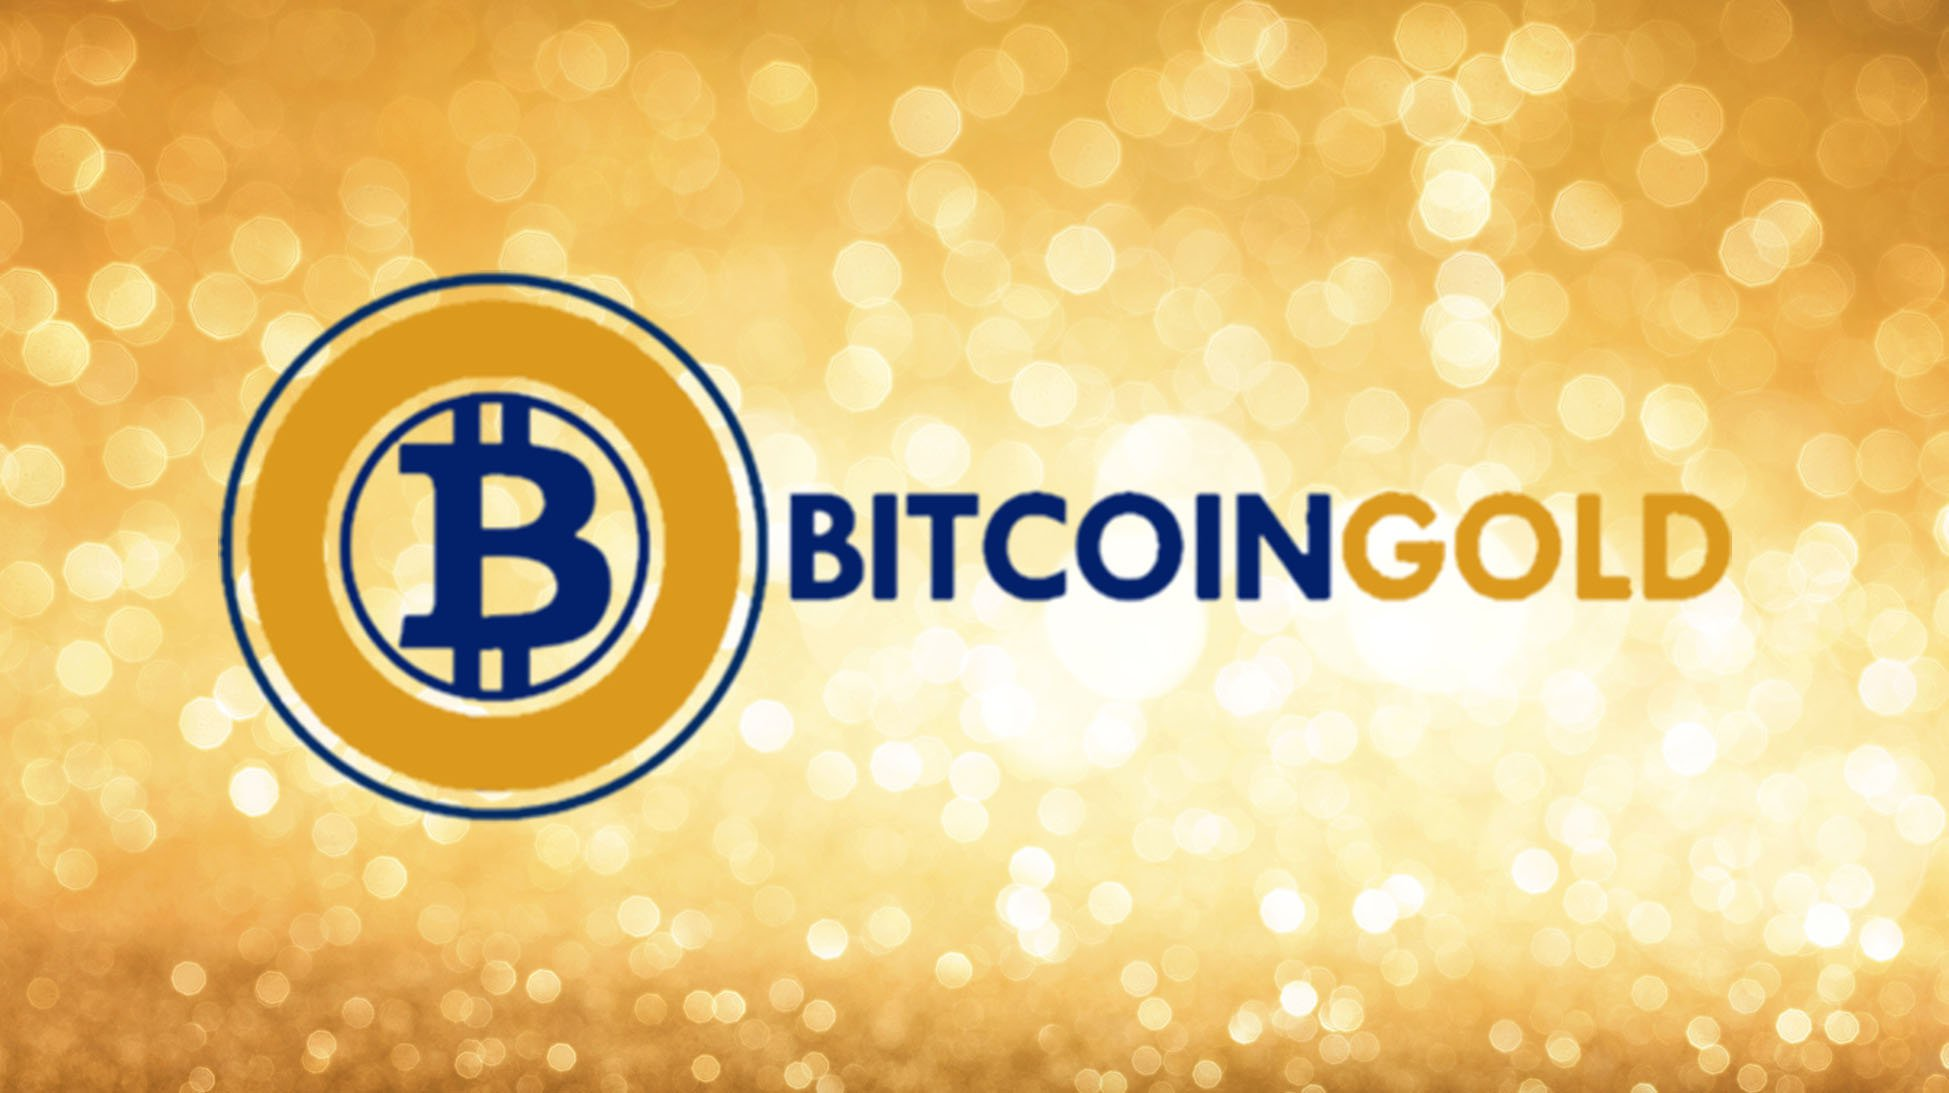 Bitcoin gold is about to trial an asic resistant bitcoin fork bitcoin gold is about to trial an asic resistant bitcoin fork ccuart Images